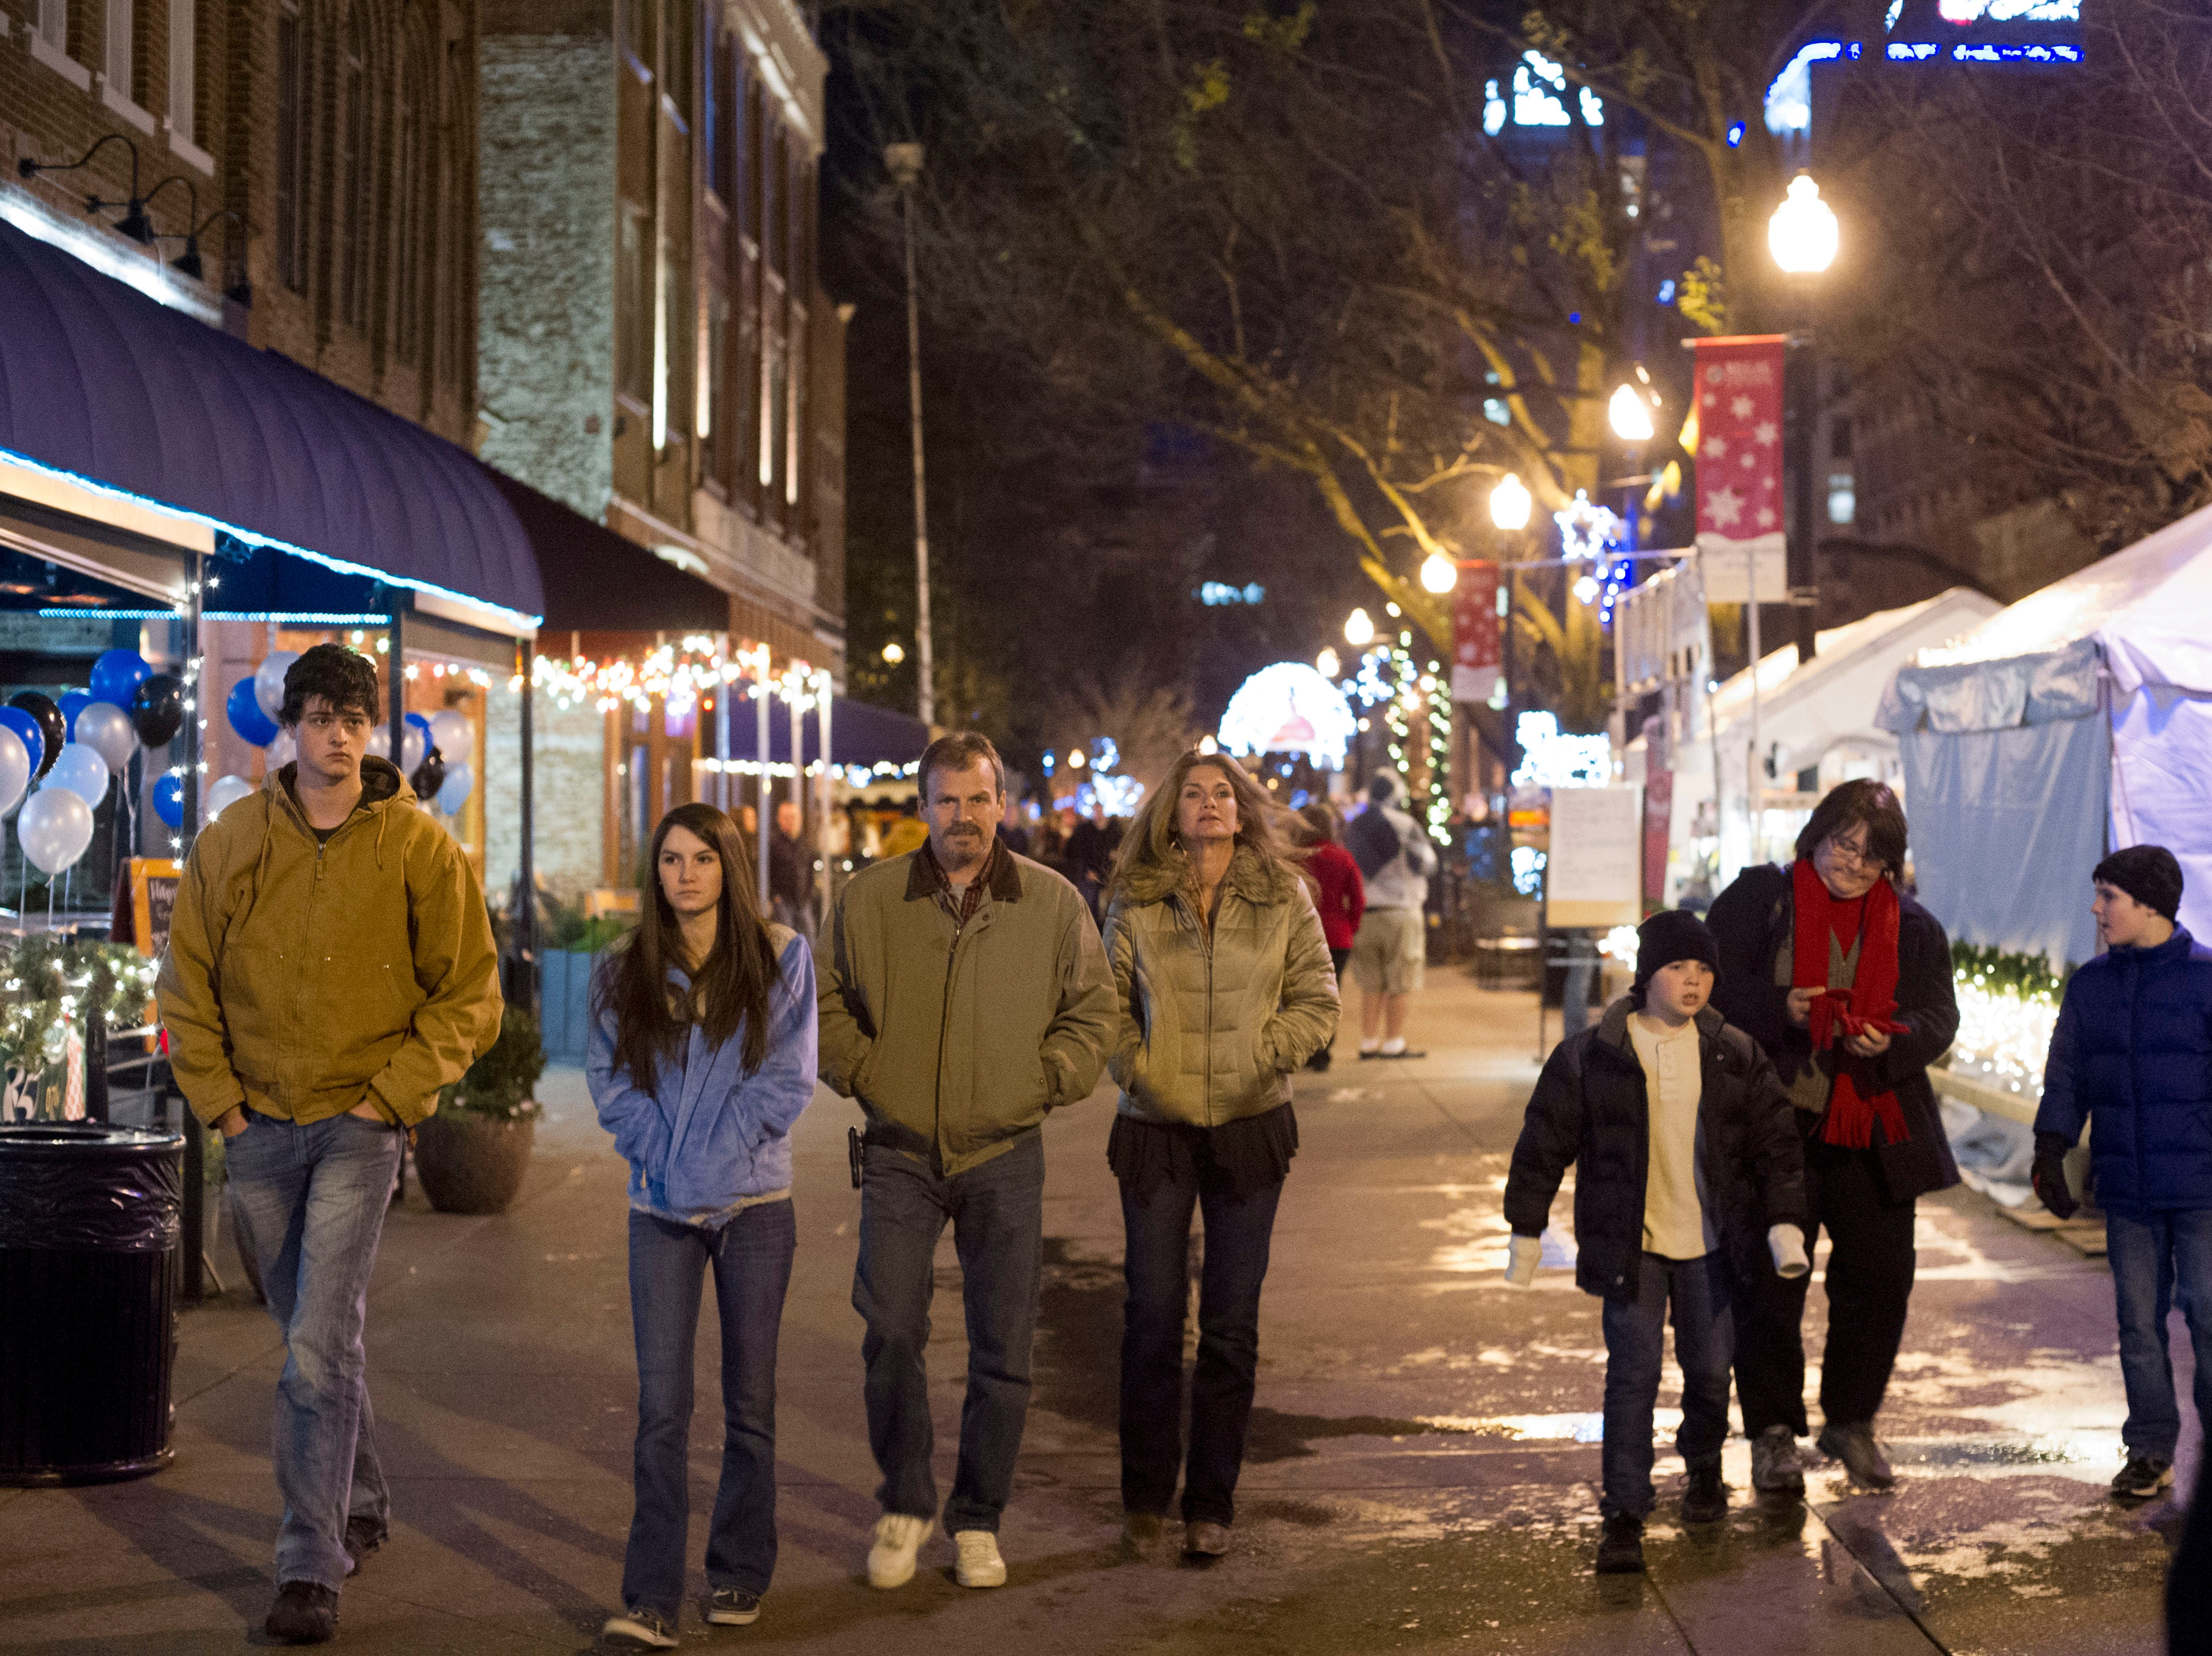 People walk Market Square on New Year's Eve on Monday, December 31, 2012.